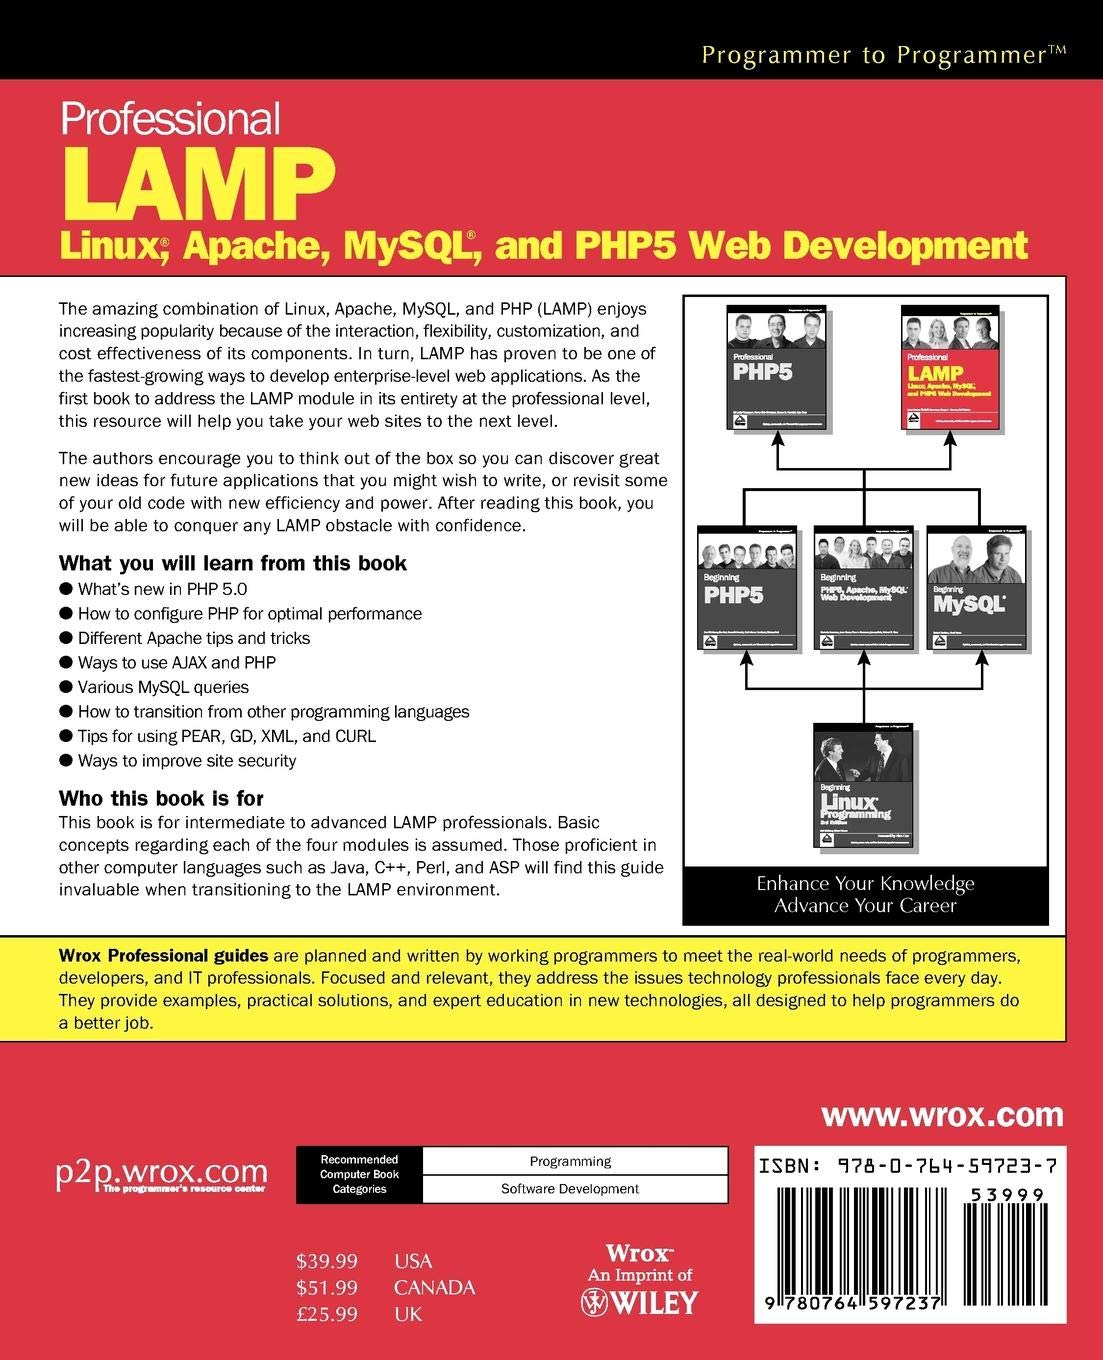 Buy Professional LAMP: Linux, Apache, MySQL and PHP5 Web Development